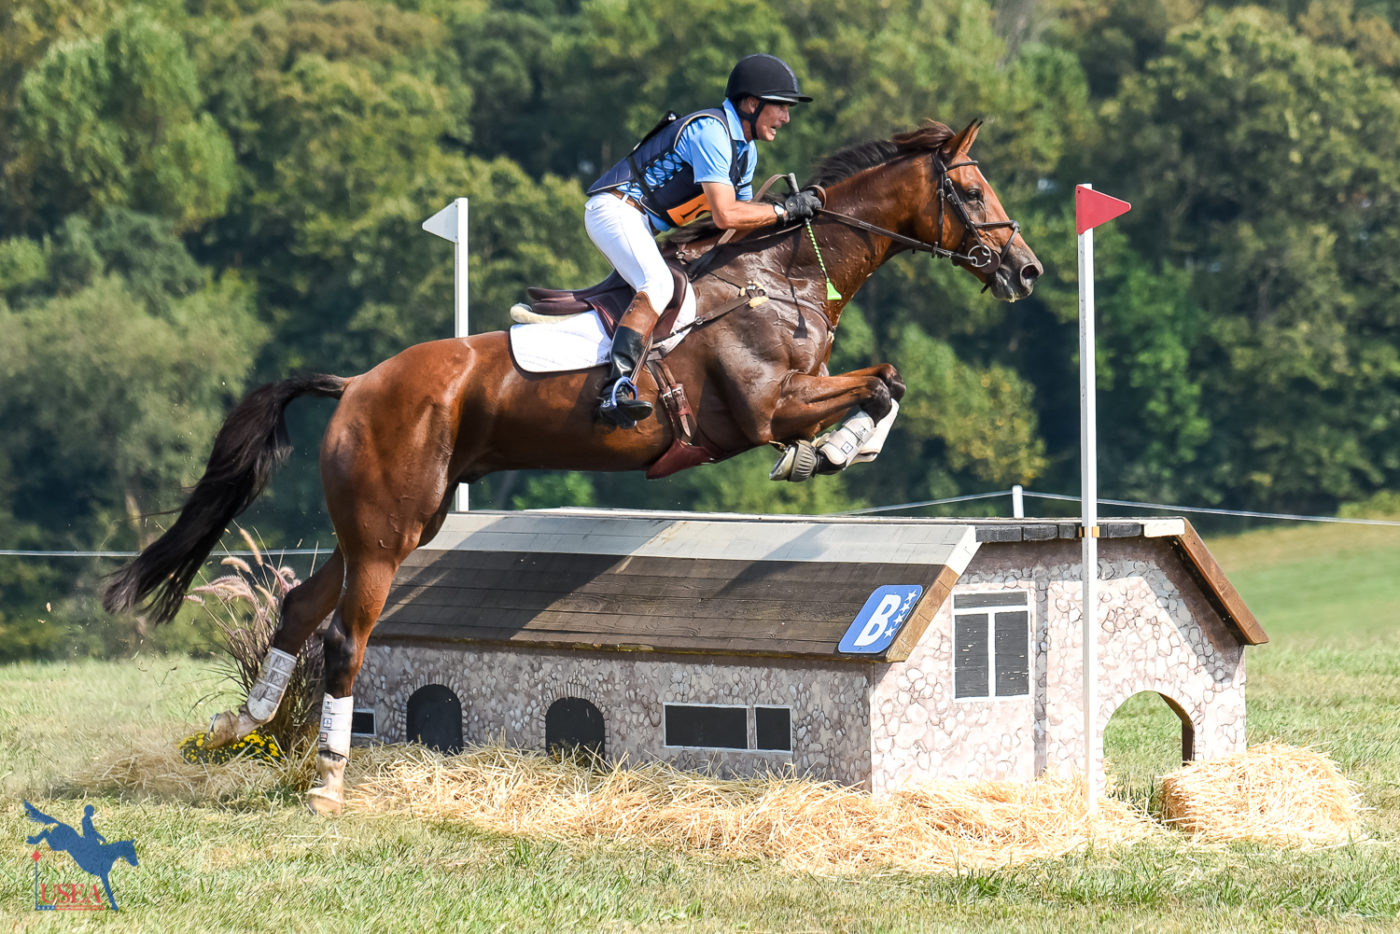 24th - Kevin Keane and Sportsfield Candy - 61.1